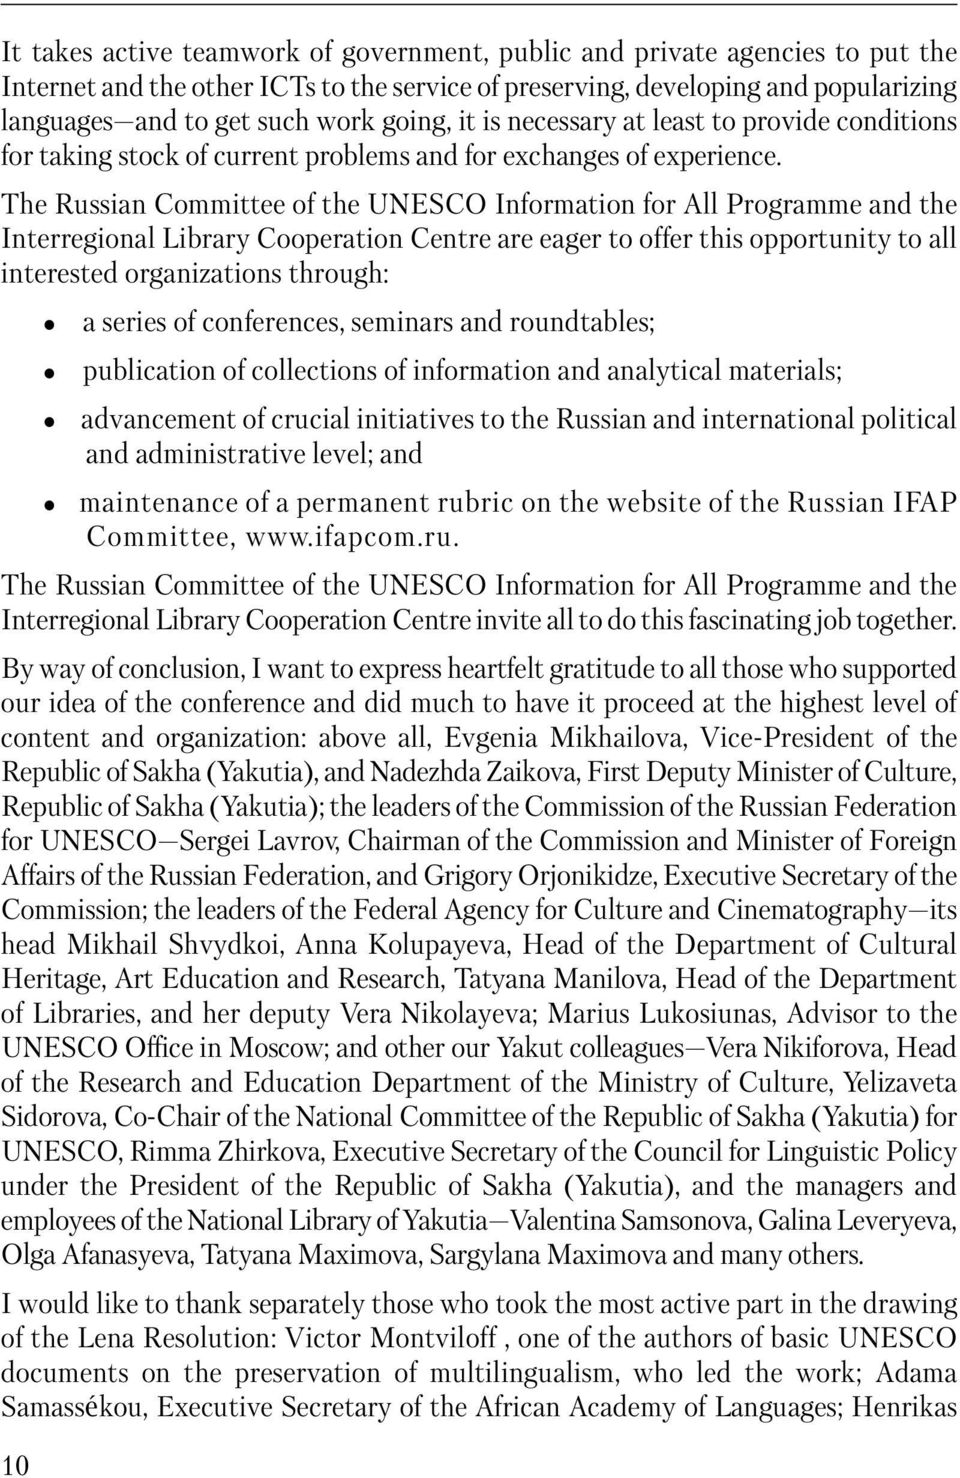 The Russian Committee of the UNESCO Information for All Programme and the Interregional Library Cooperation Centre are eager to offer this opportunity to all interested organizations through: a